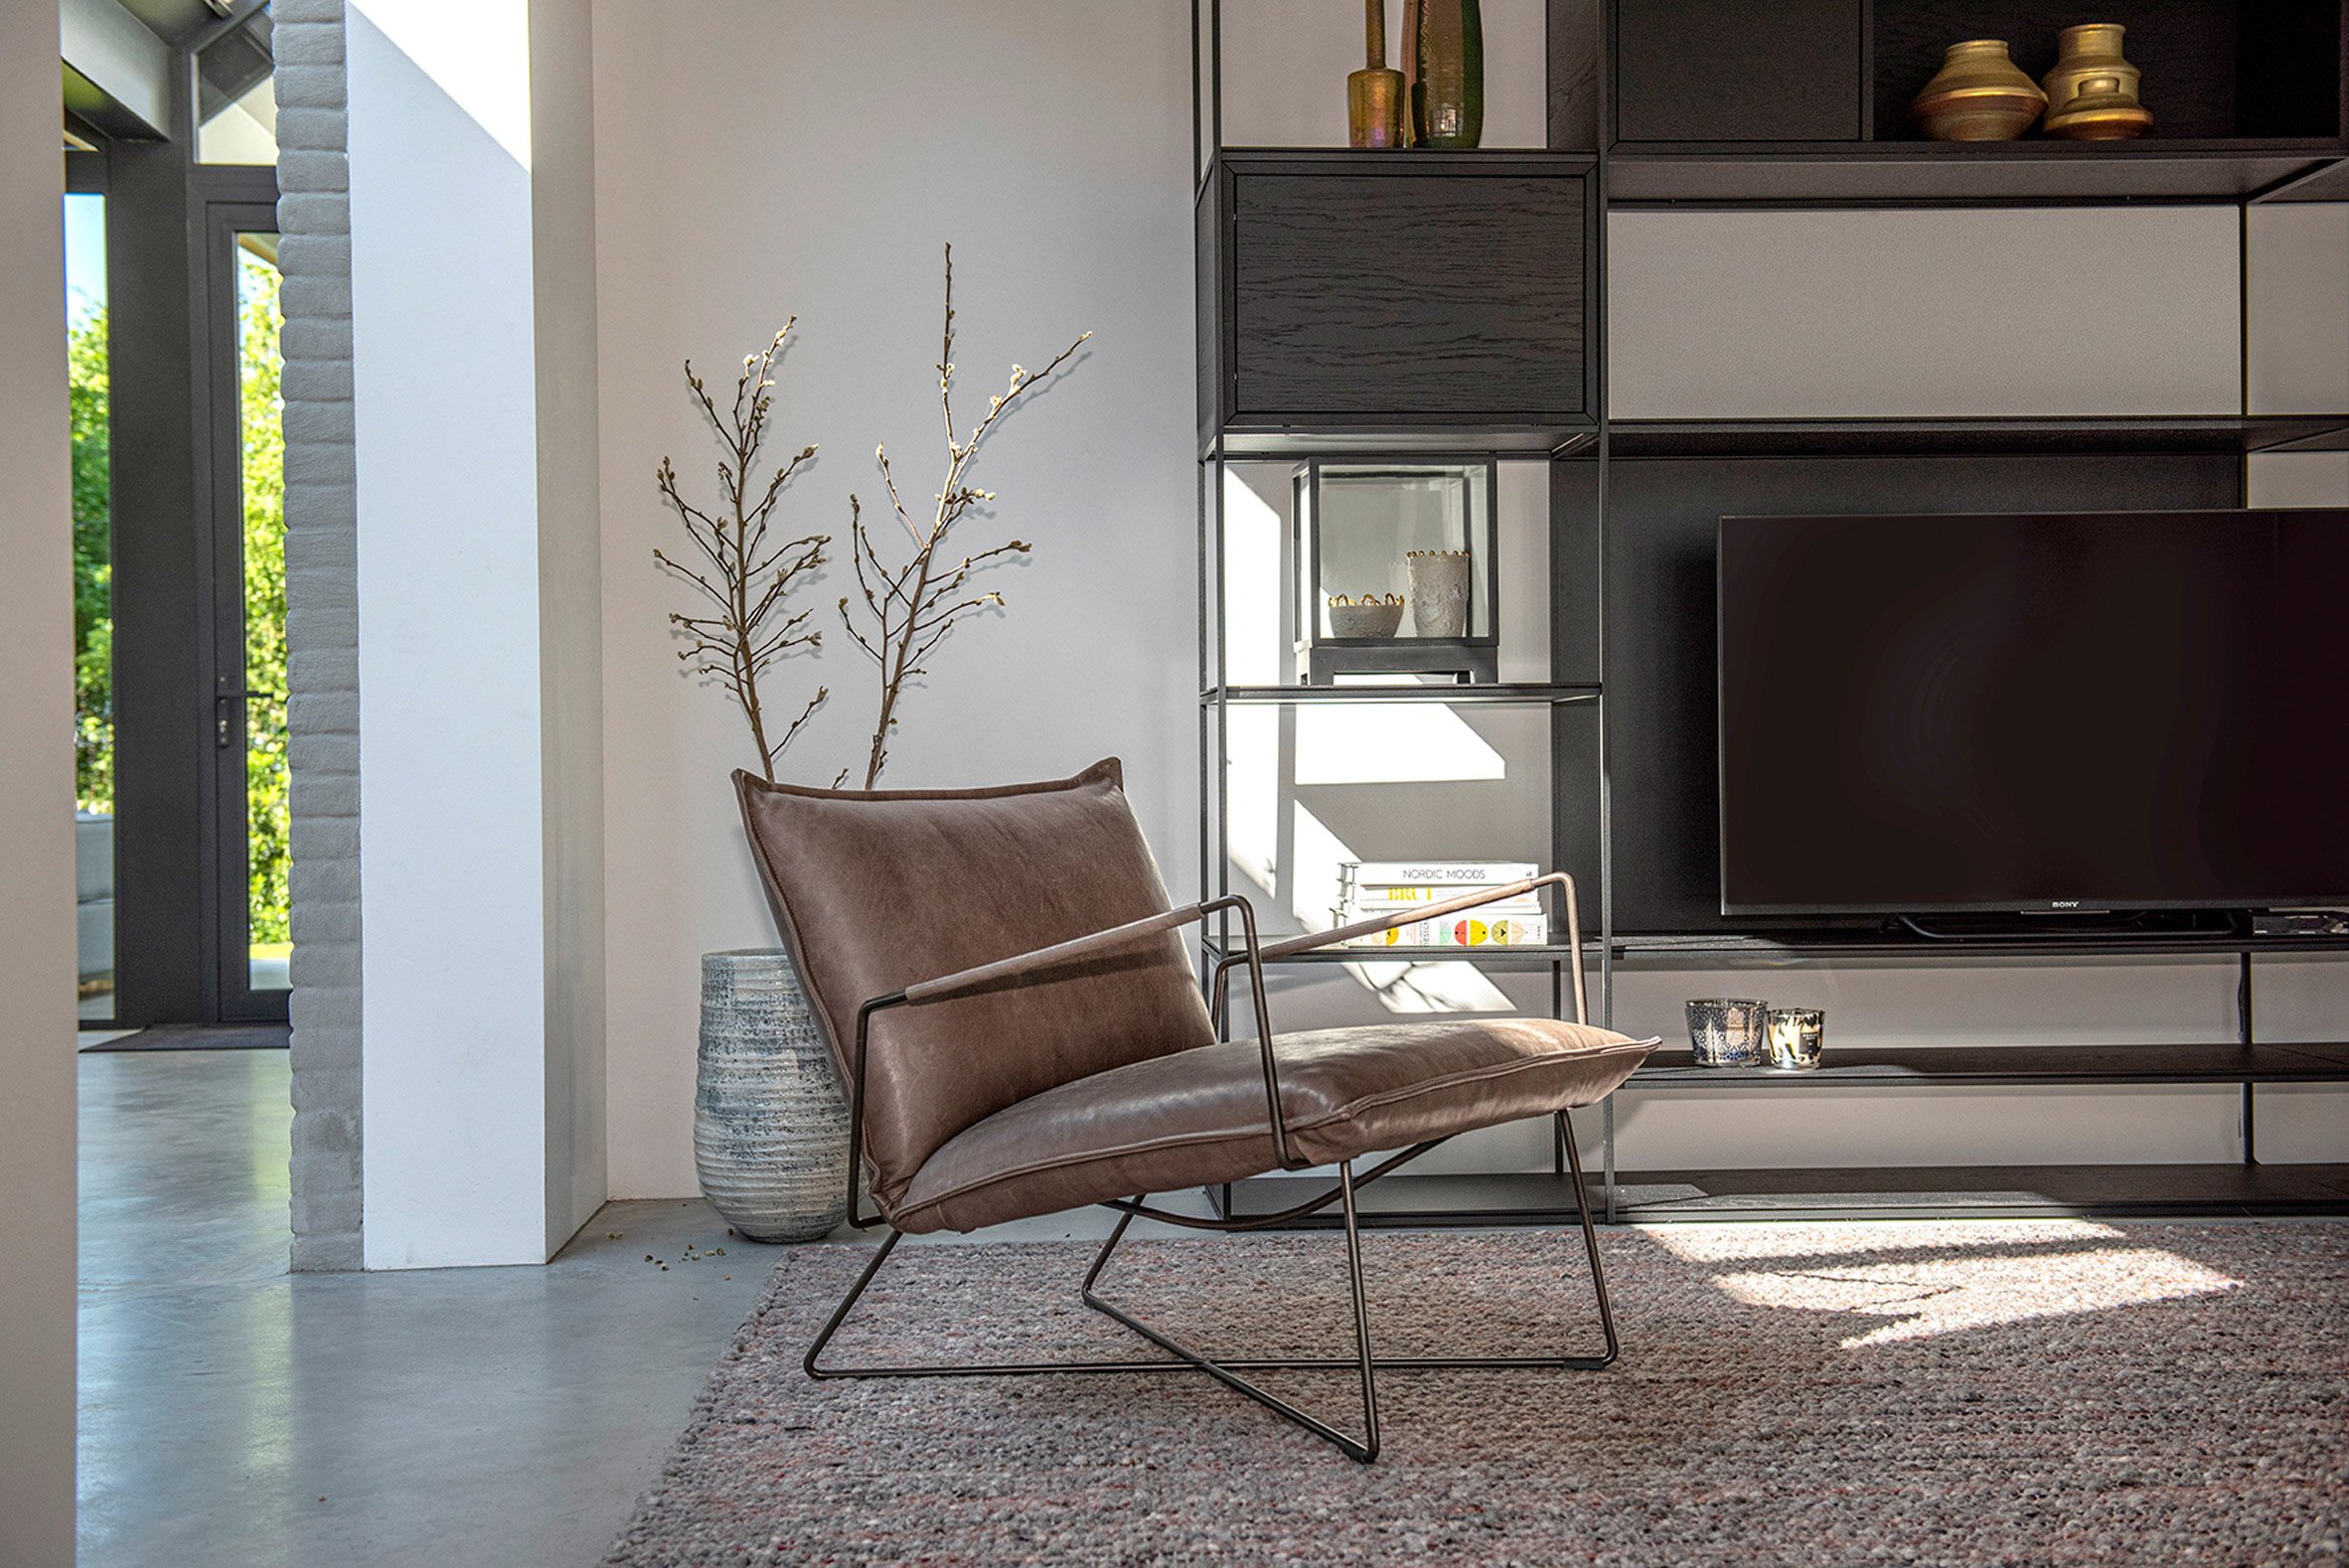 Leather lounge chair by Jess